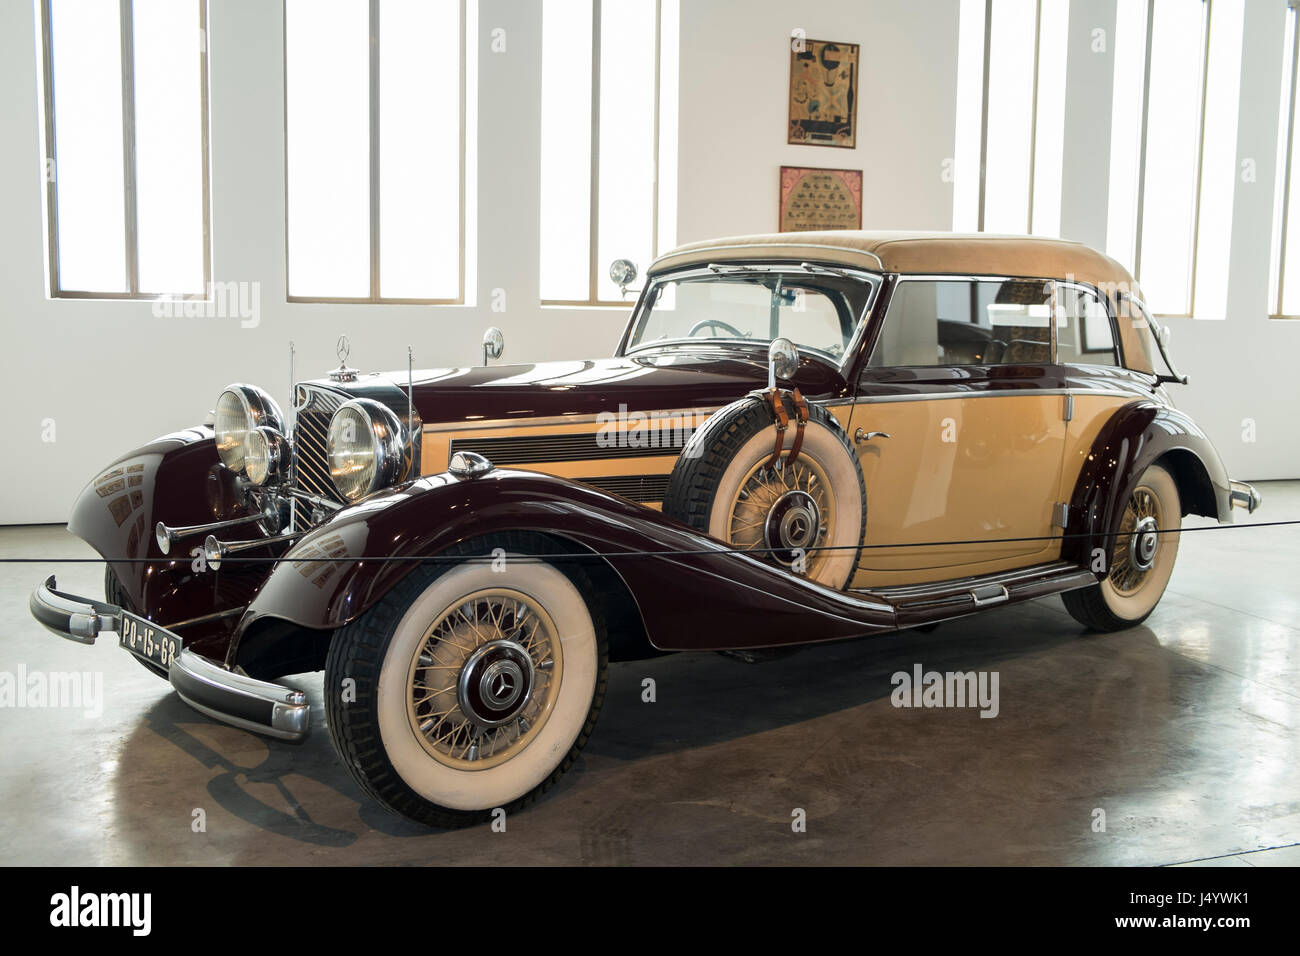 1937 Mercedes 540K. Automobile museum of Málaga, Andalusia, Spain. - Stock Image